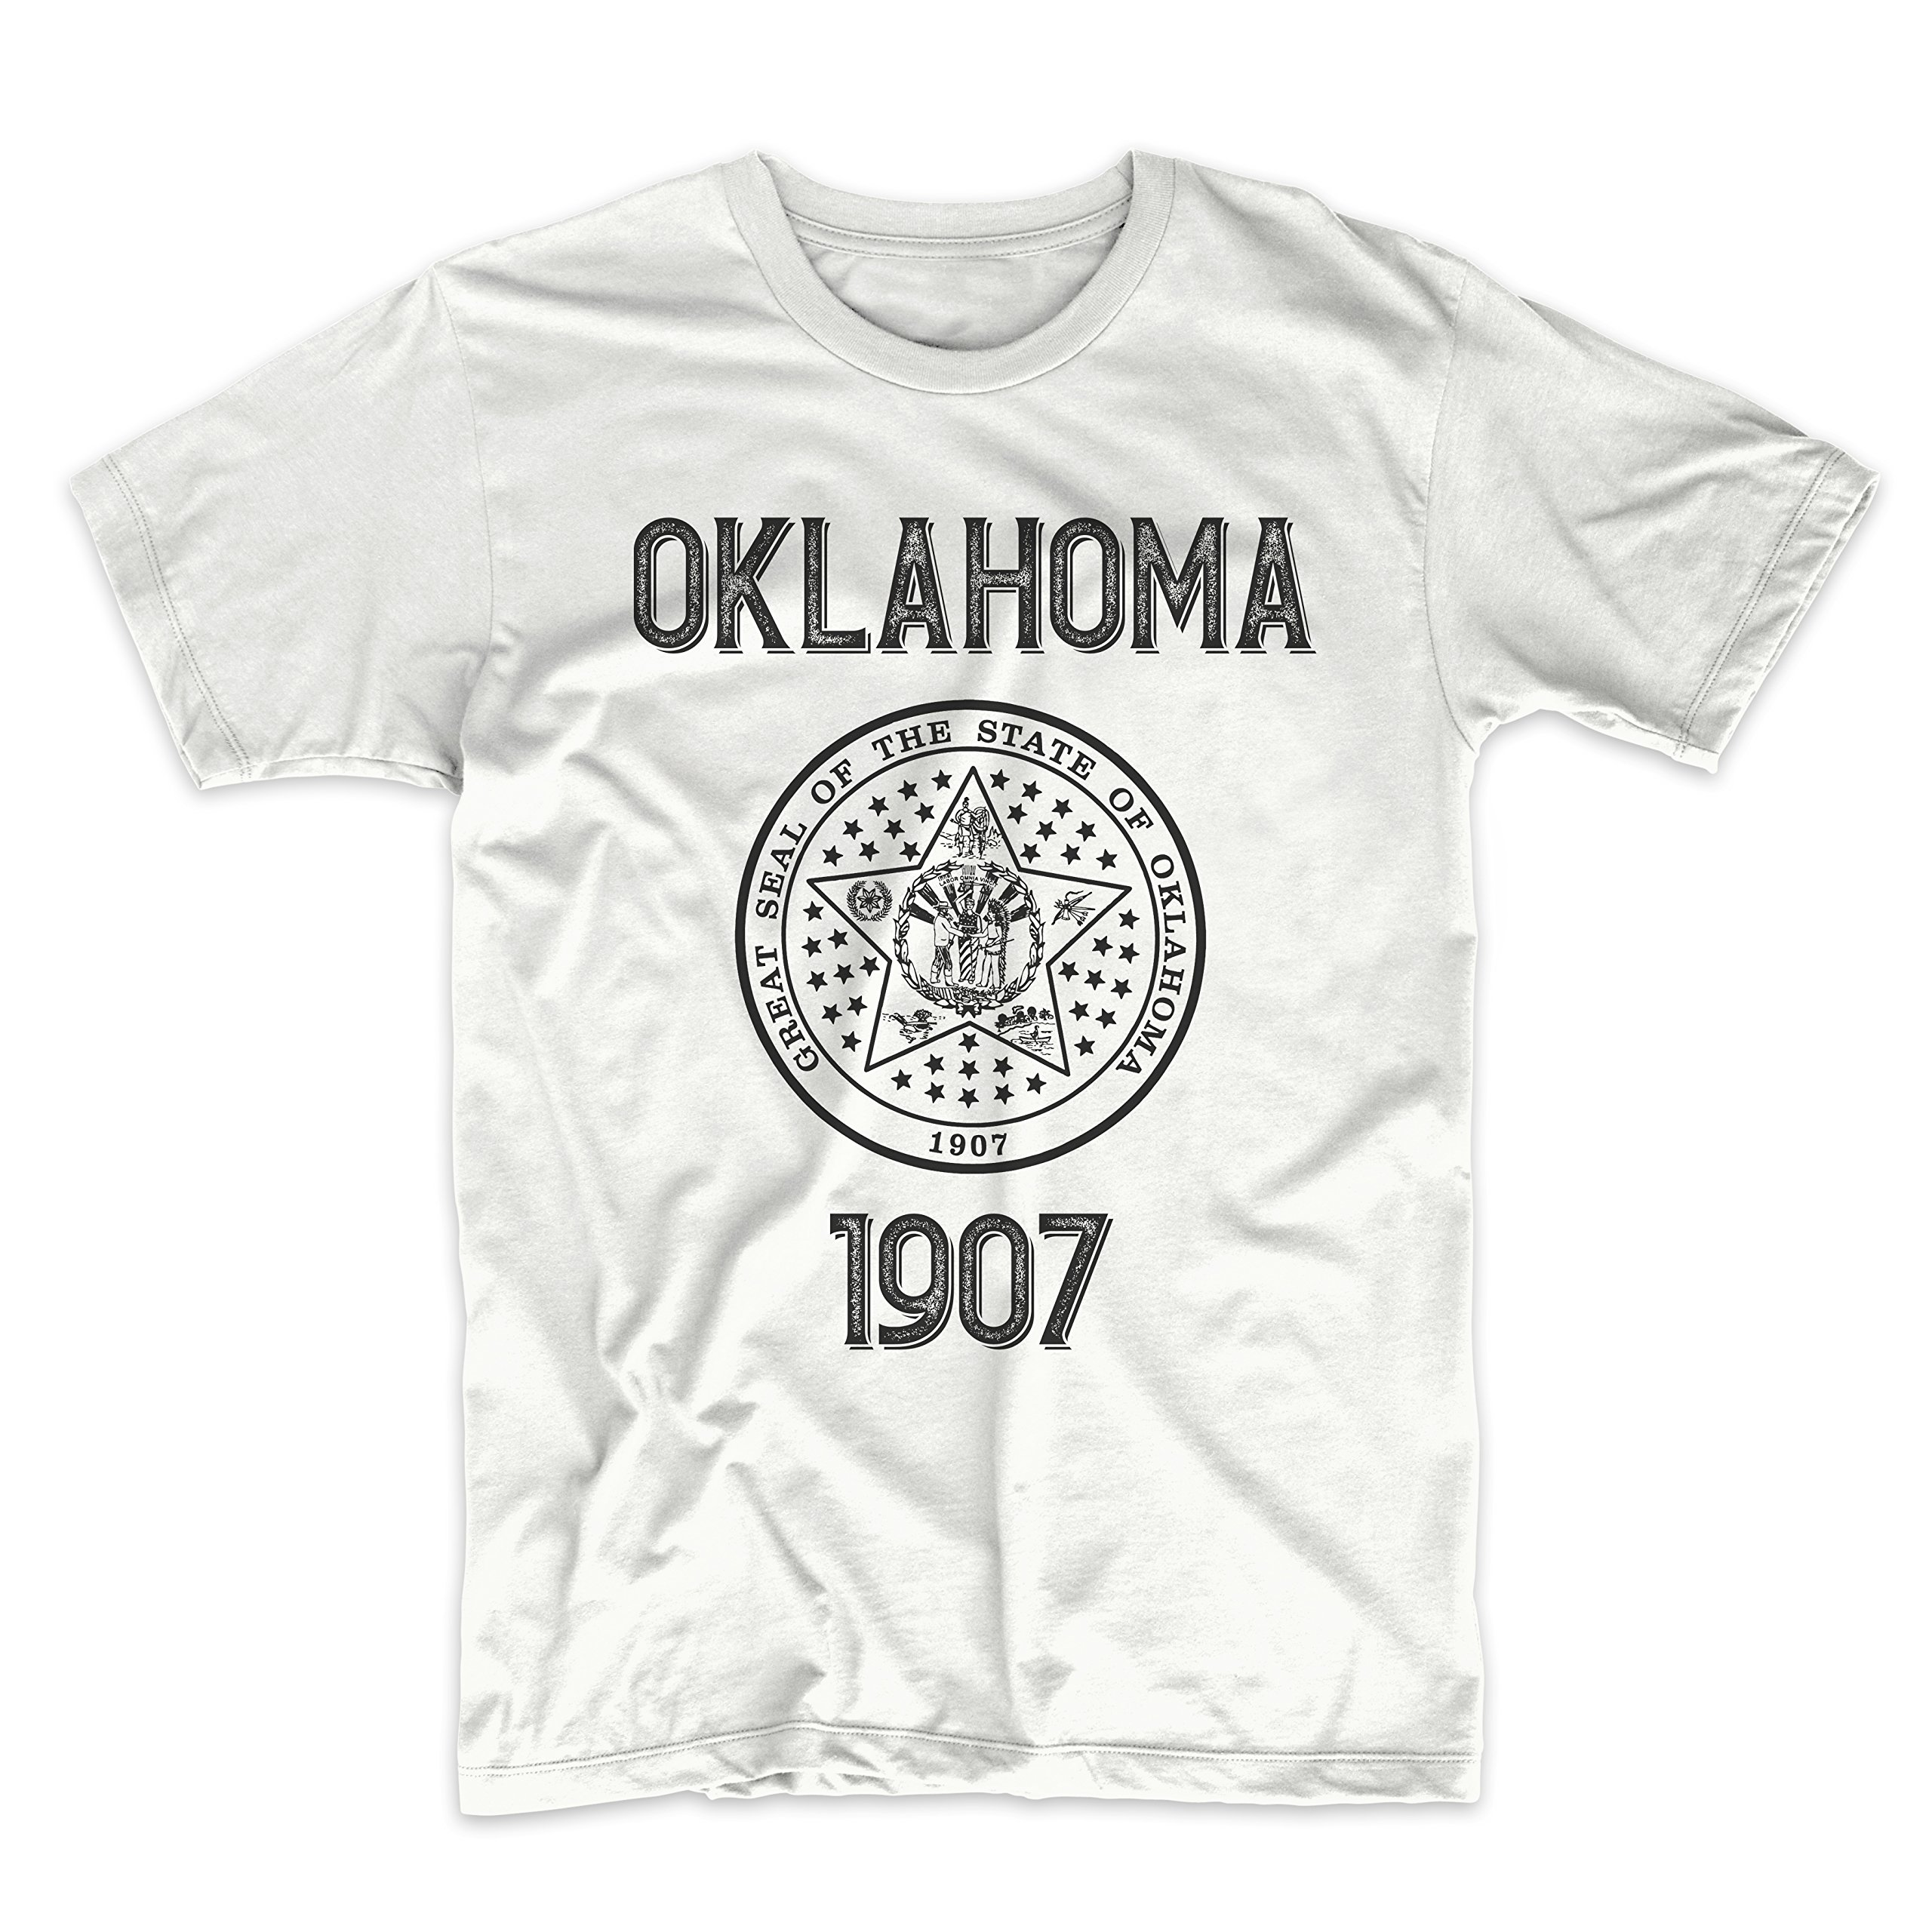 PatentPrints Oklahoma Coat of Arms T Shirt